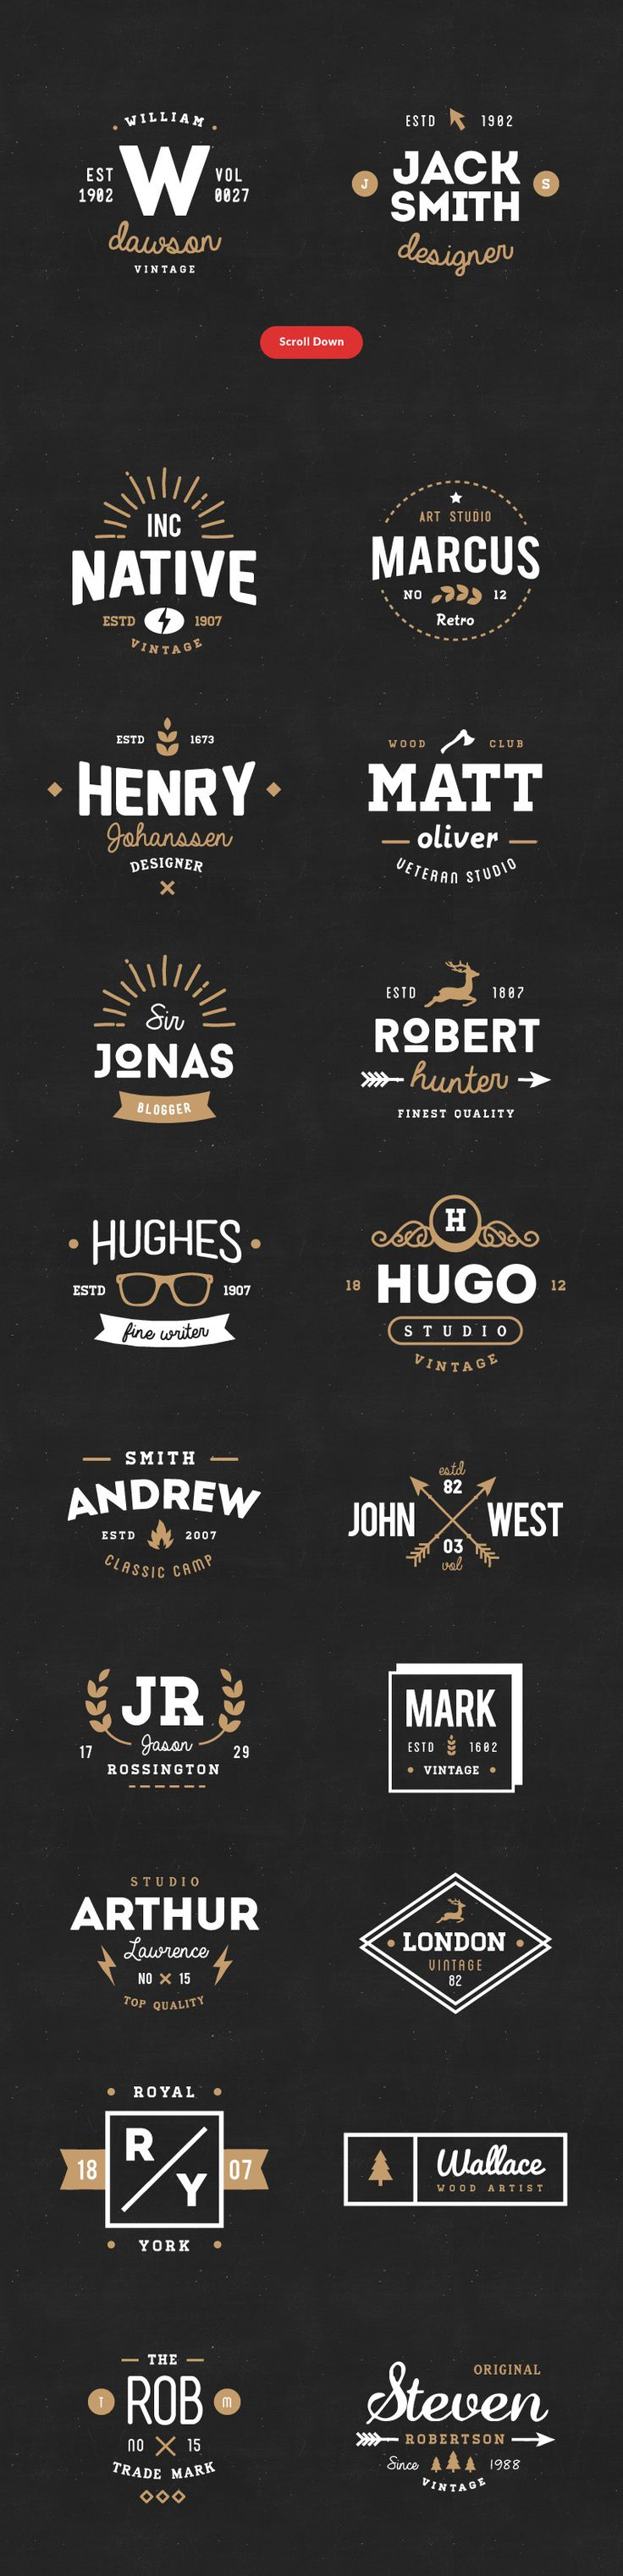 FREE this week! 20 Vintage Logos & Badges Vol 01